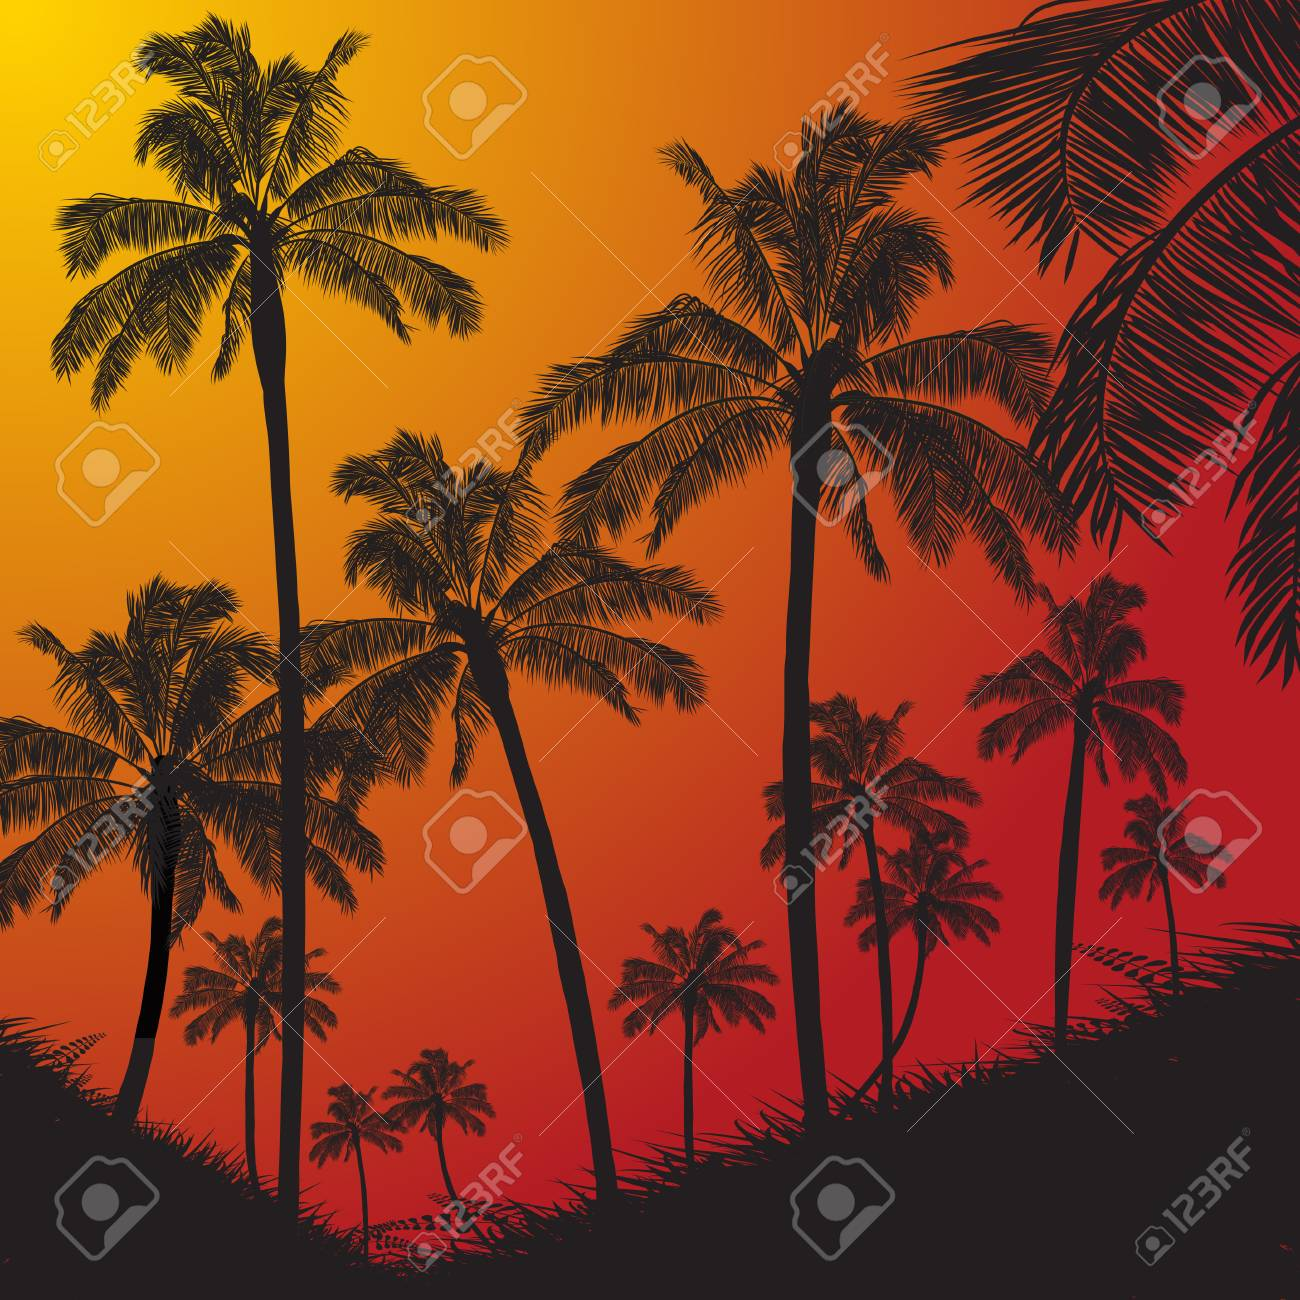 tropical palm trees and grass silhouette over red and yellow